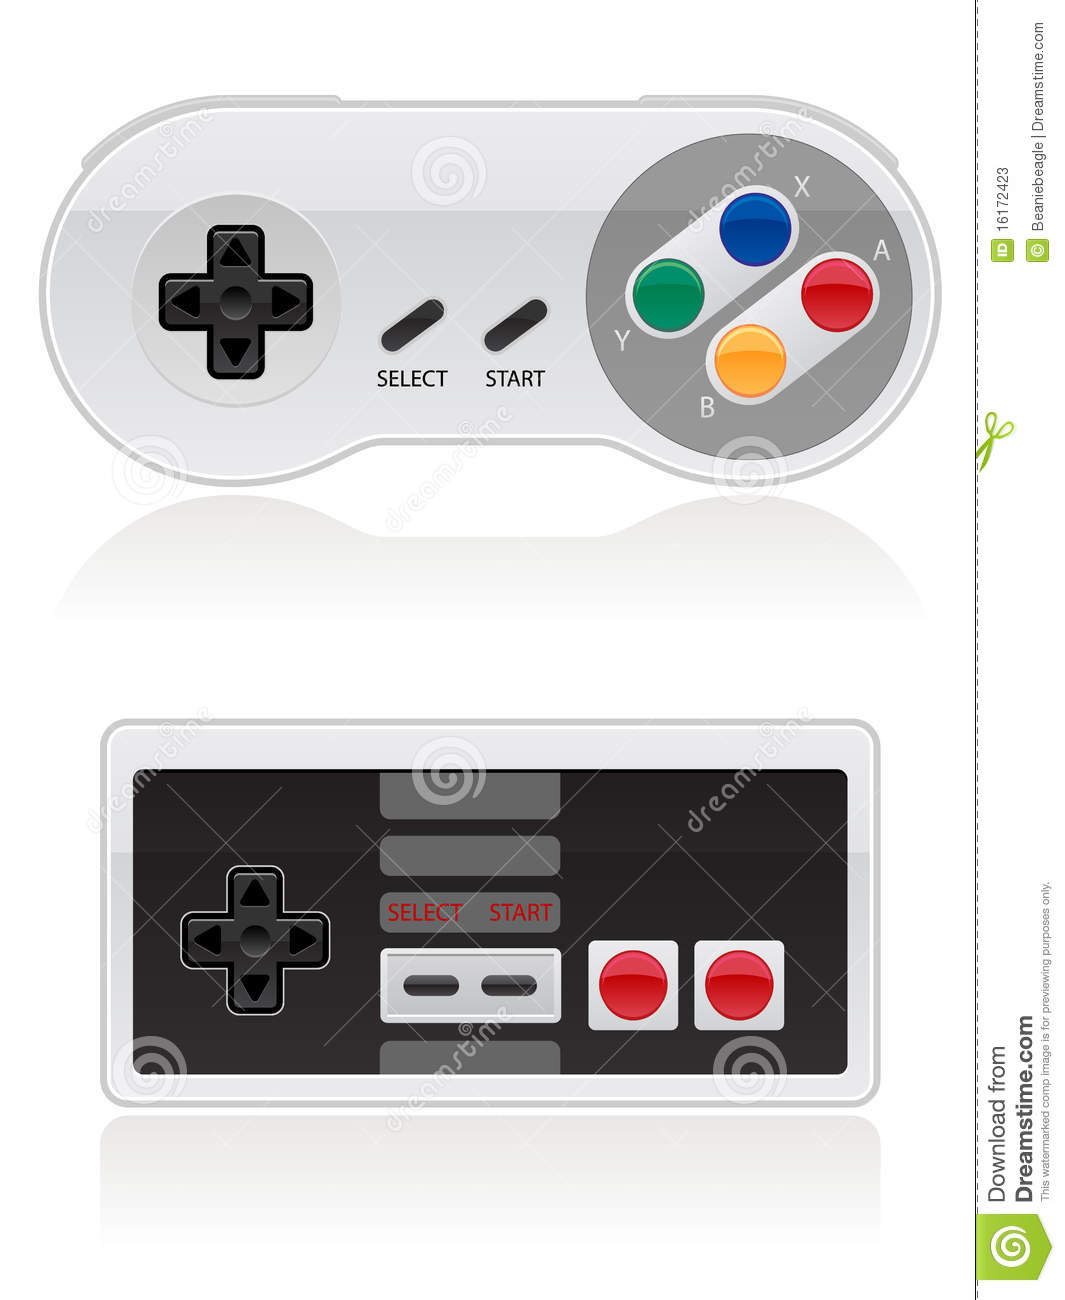 Space Invaders Wall Stickers Retro Video Game Controller Eps Stock Photos Image 16172423